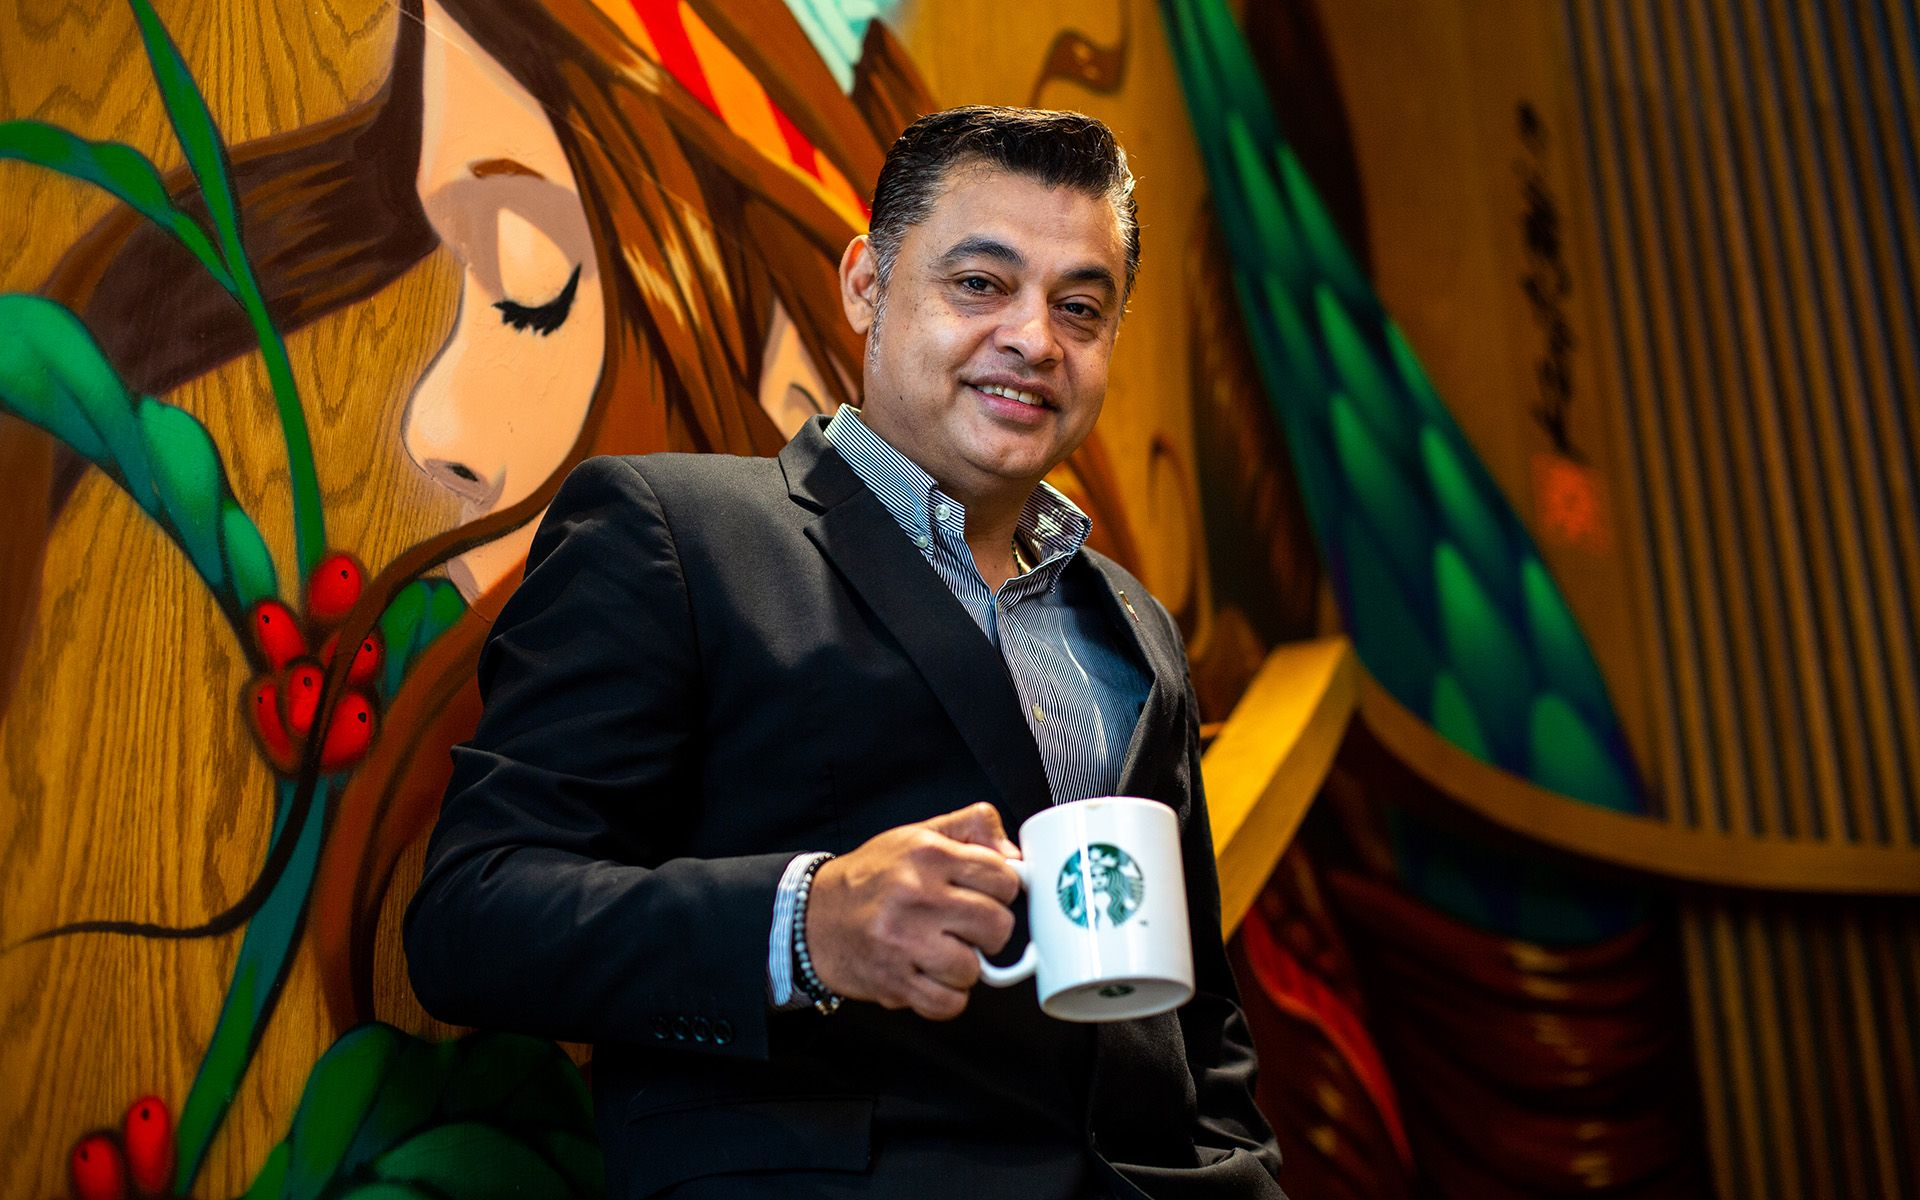 Sydney Quays Sheds Light On Starbucks Malaysia's Watershed Moments